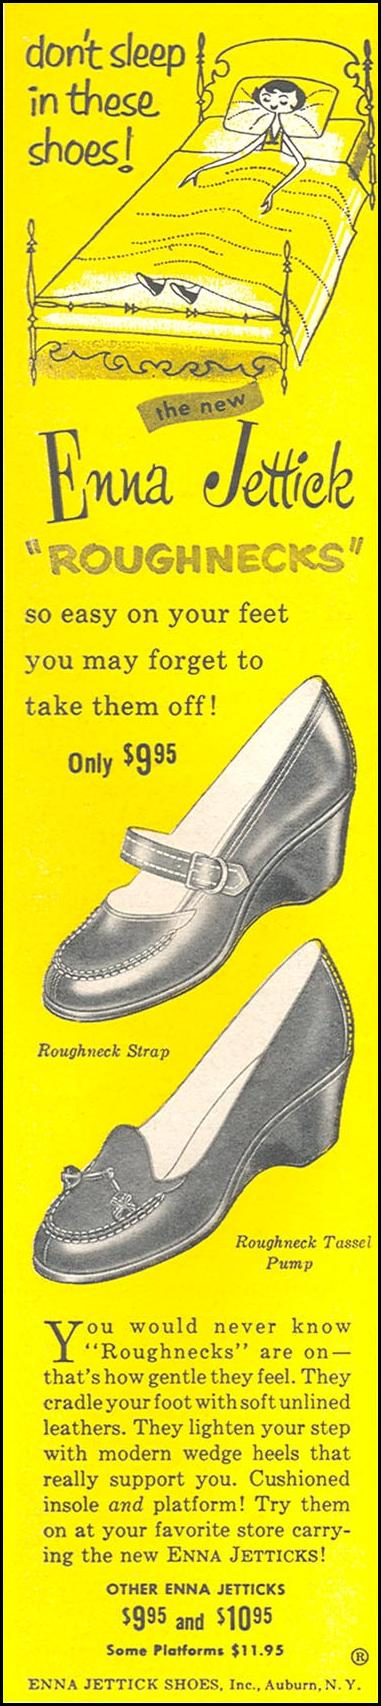 ENNA JETTICK SHOES WOMAN'S DAY 04/01/1956 p. 4